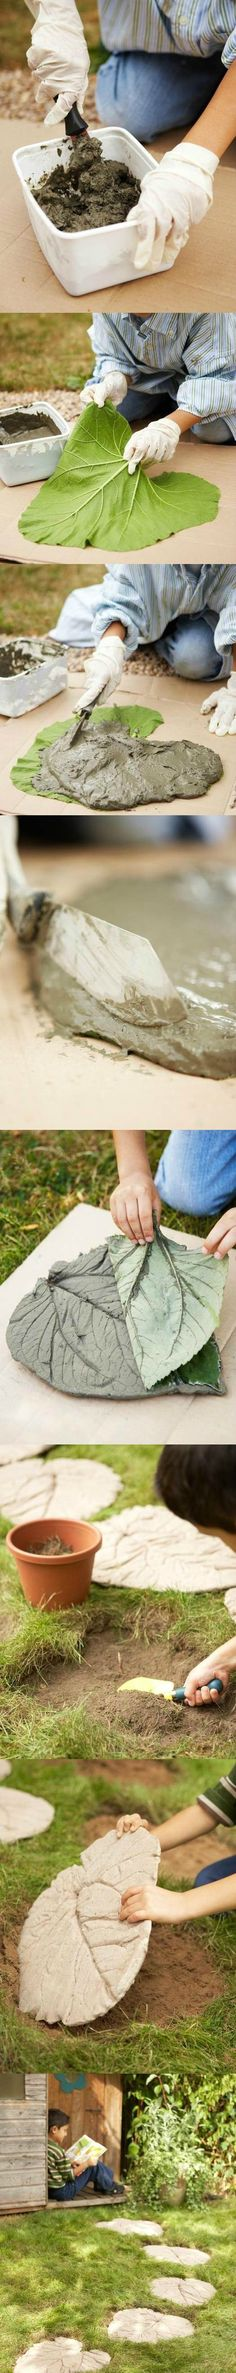 Step-by-Step DIY Garden Decorations You Can Do In No Time